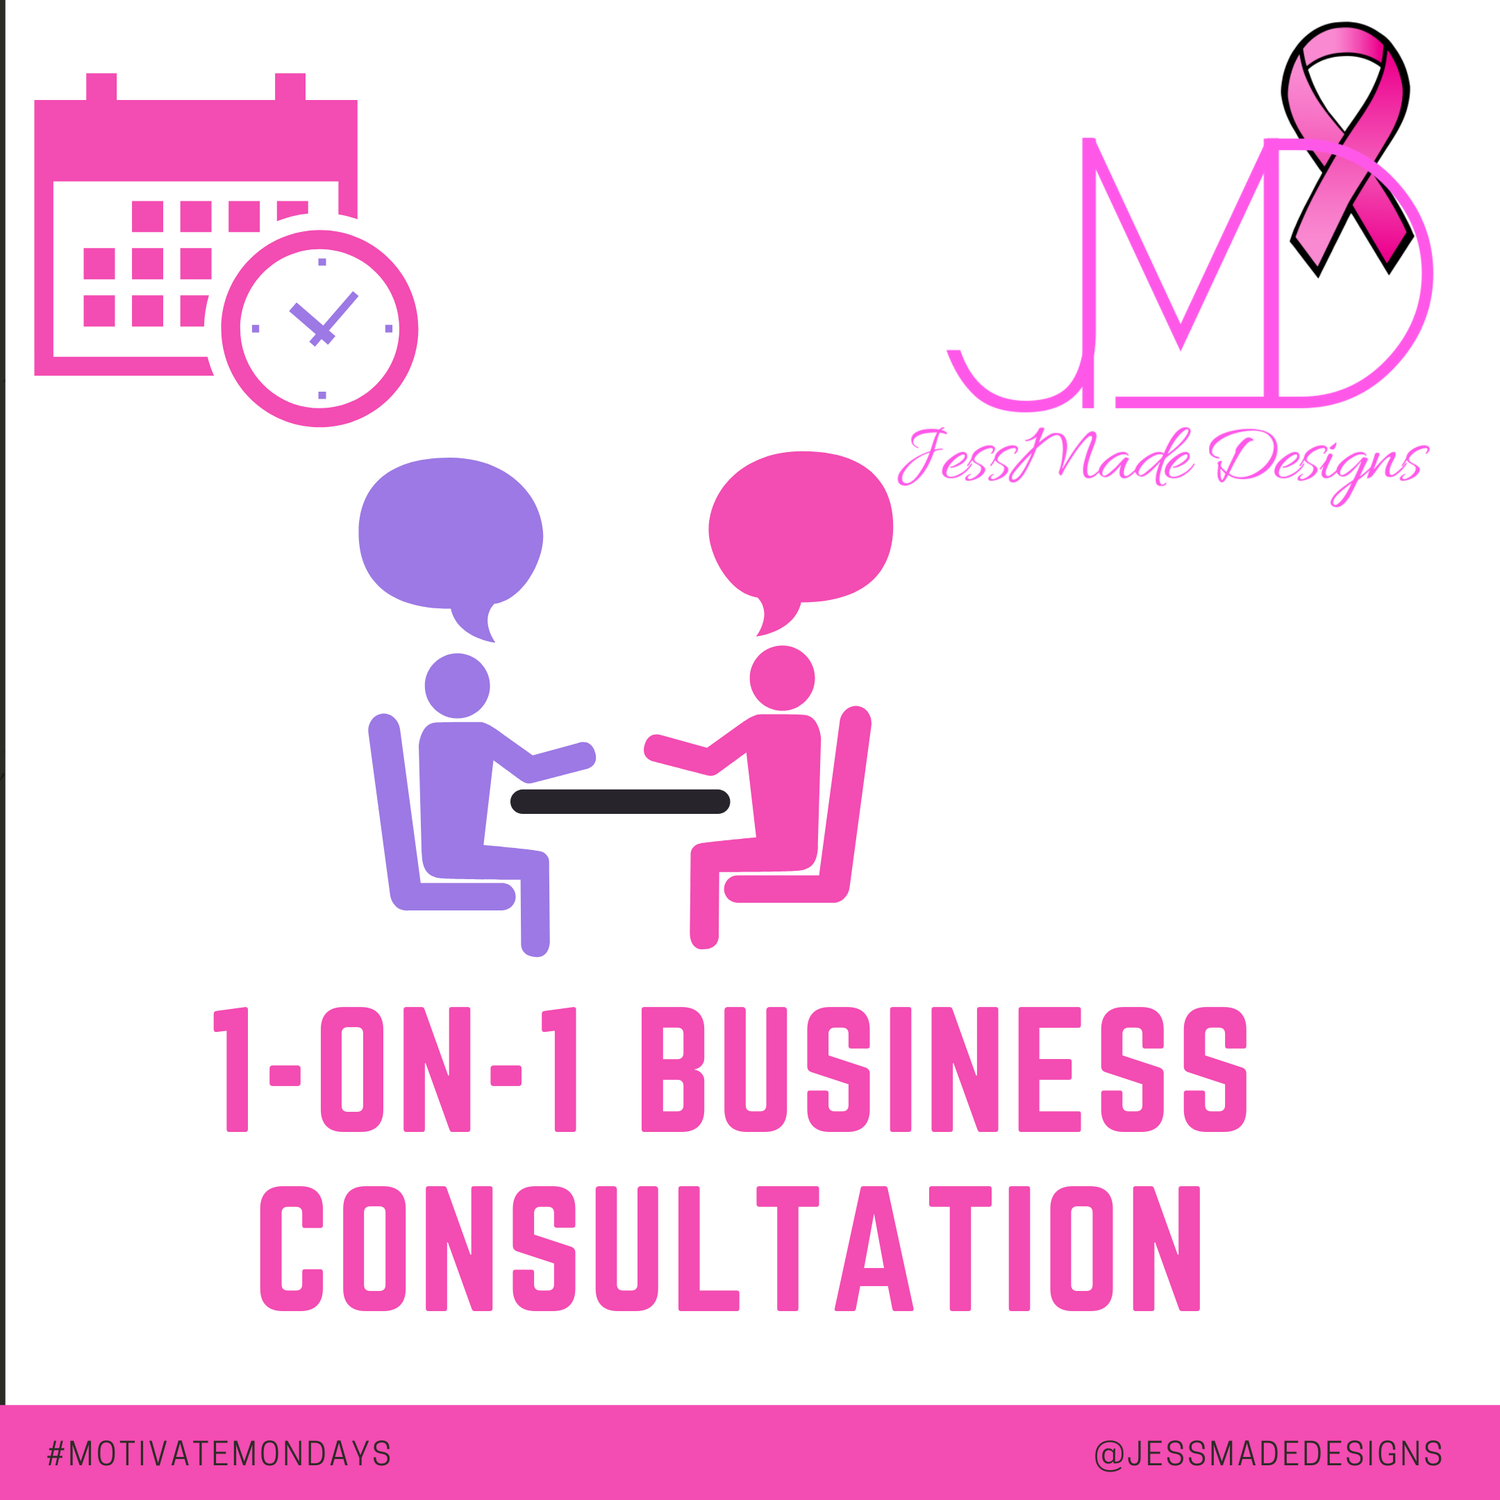 Image of 1 on 1 Consultation